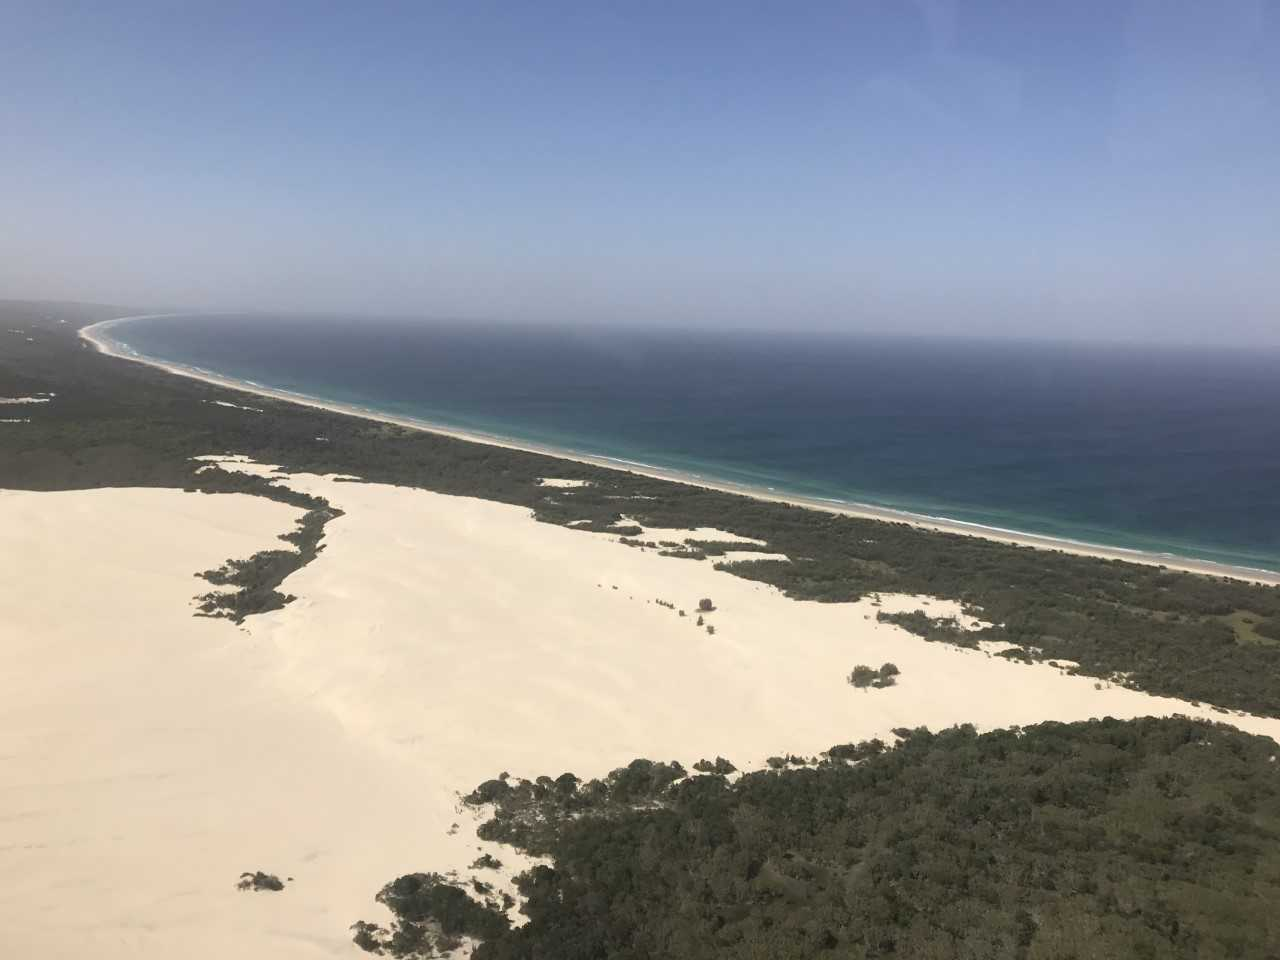 The white sands of Moreton Island as seen from a helicopter